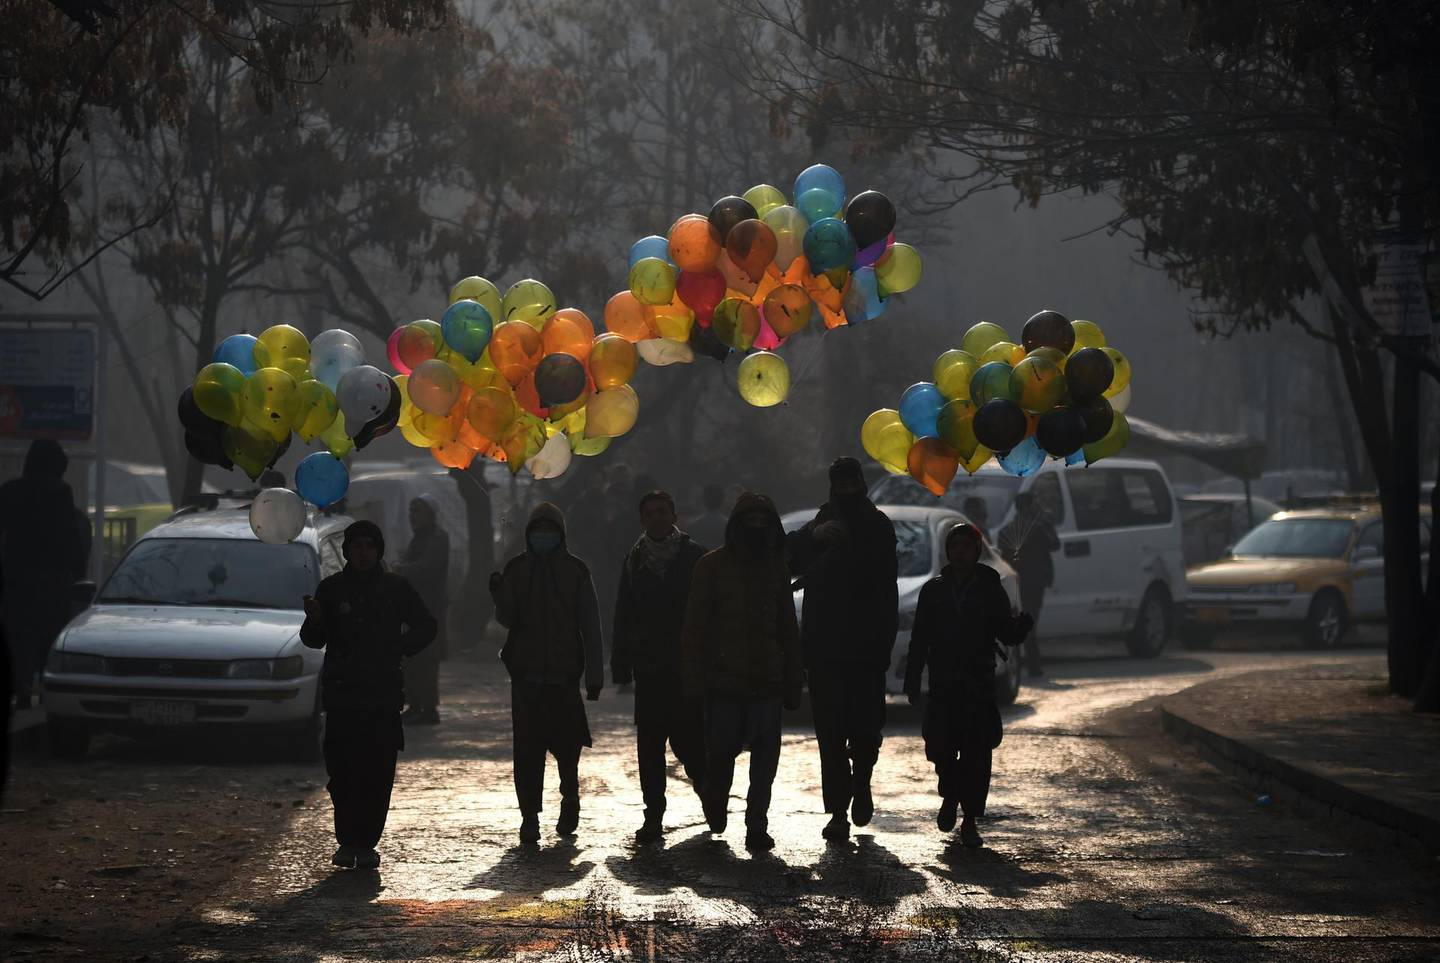 Afghan balloon vendors walks past the Ministry of Public Works a day after a deadly militant attack in Kabul on December 25, 2018. An hours-long gun and suicide attack on a Kabul government compound killed at least 43 people, the health ministry said December 25, making it one of the deadliest assaults on the Afghan capital this year.  / AFP / WAKIL KOHSAR